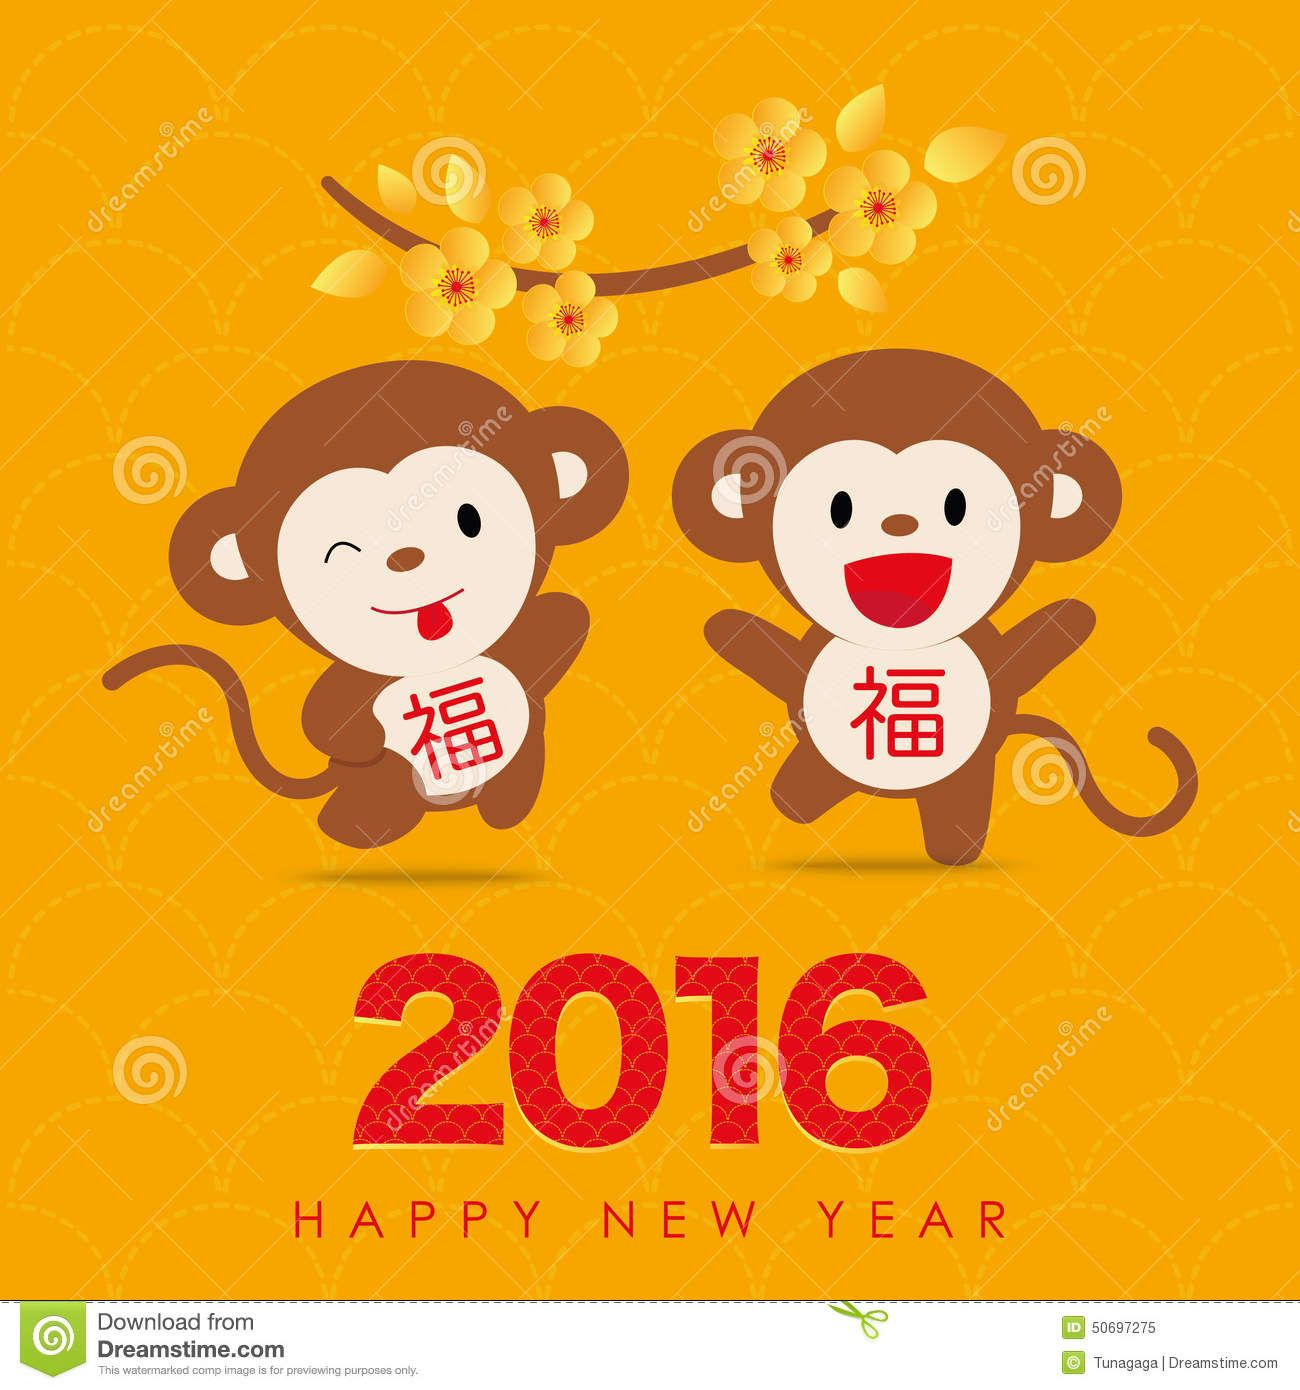 2016 Chinese New Year Greeting Card Design Download From Over 35